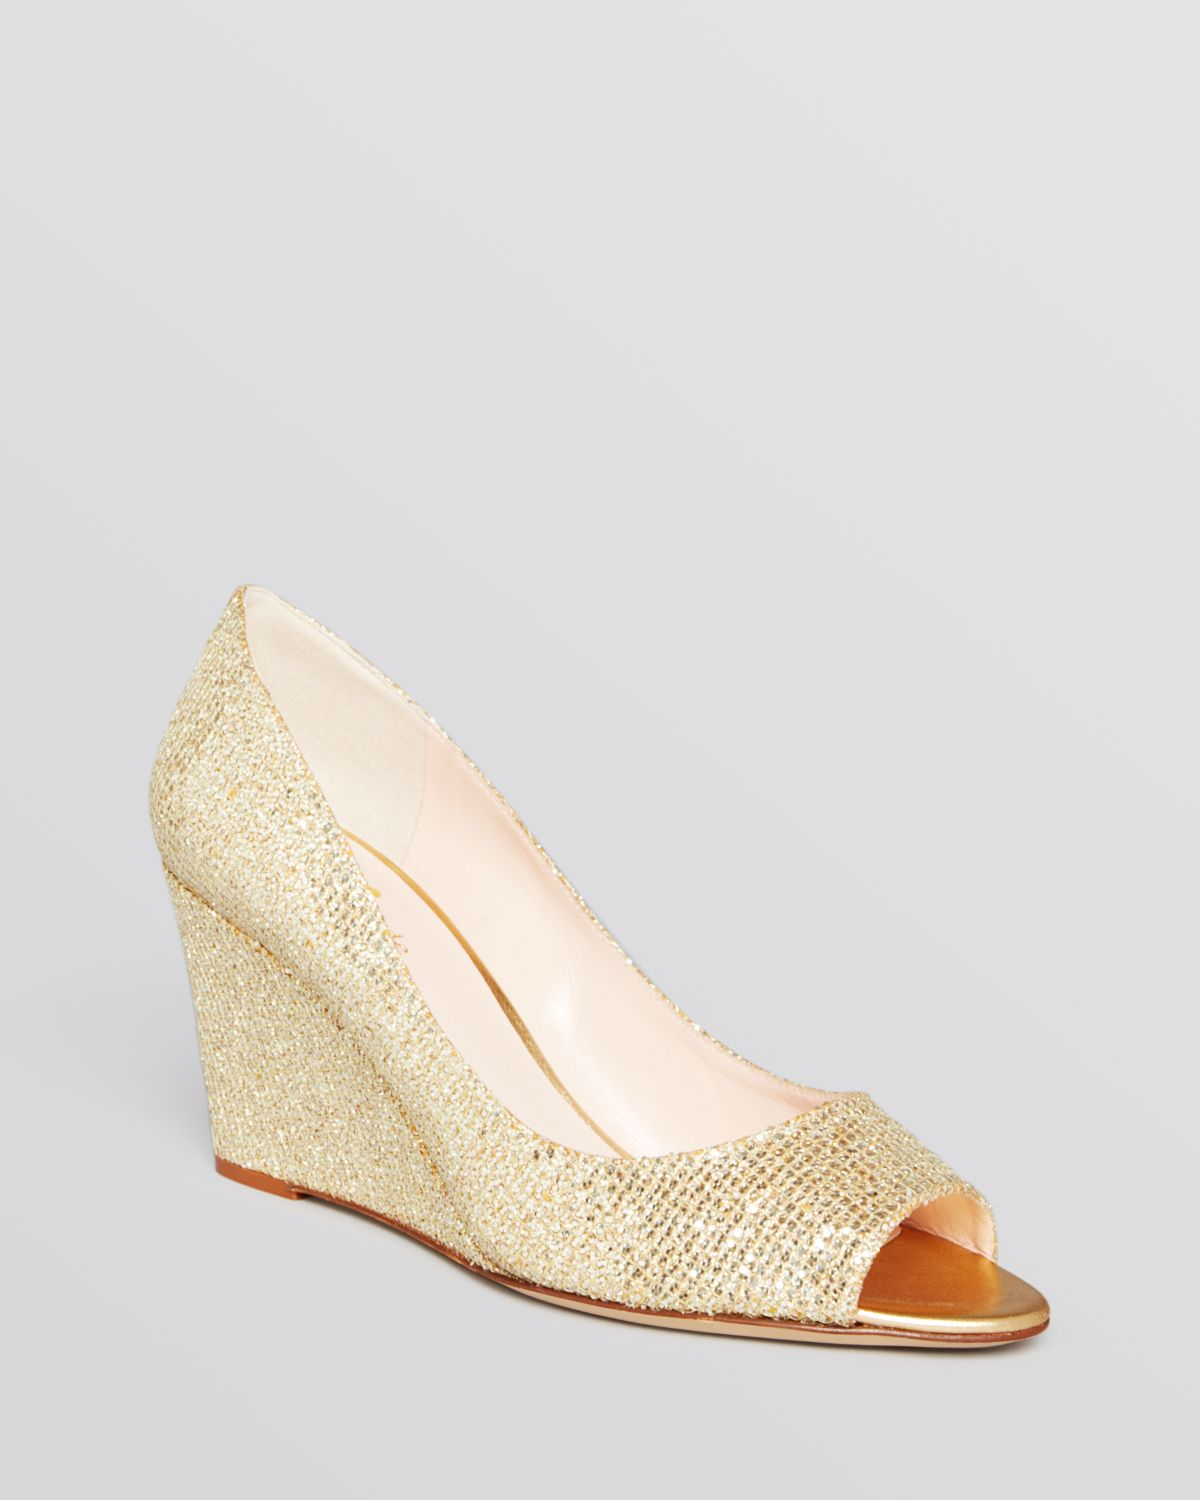 58002957e518 Lyst - Kate Spade Peep Toe Wedge Evening Pumps - Radiant Gold in ...